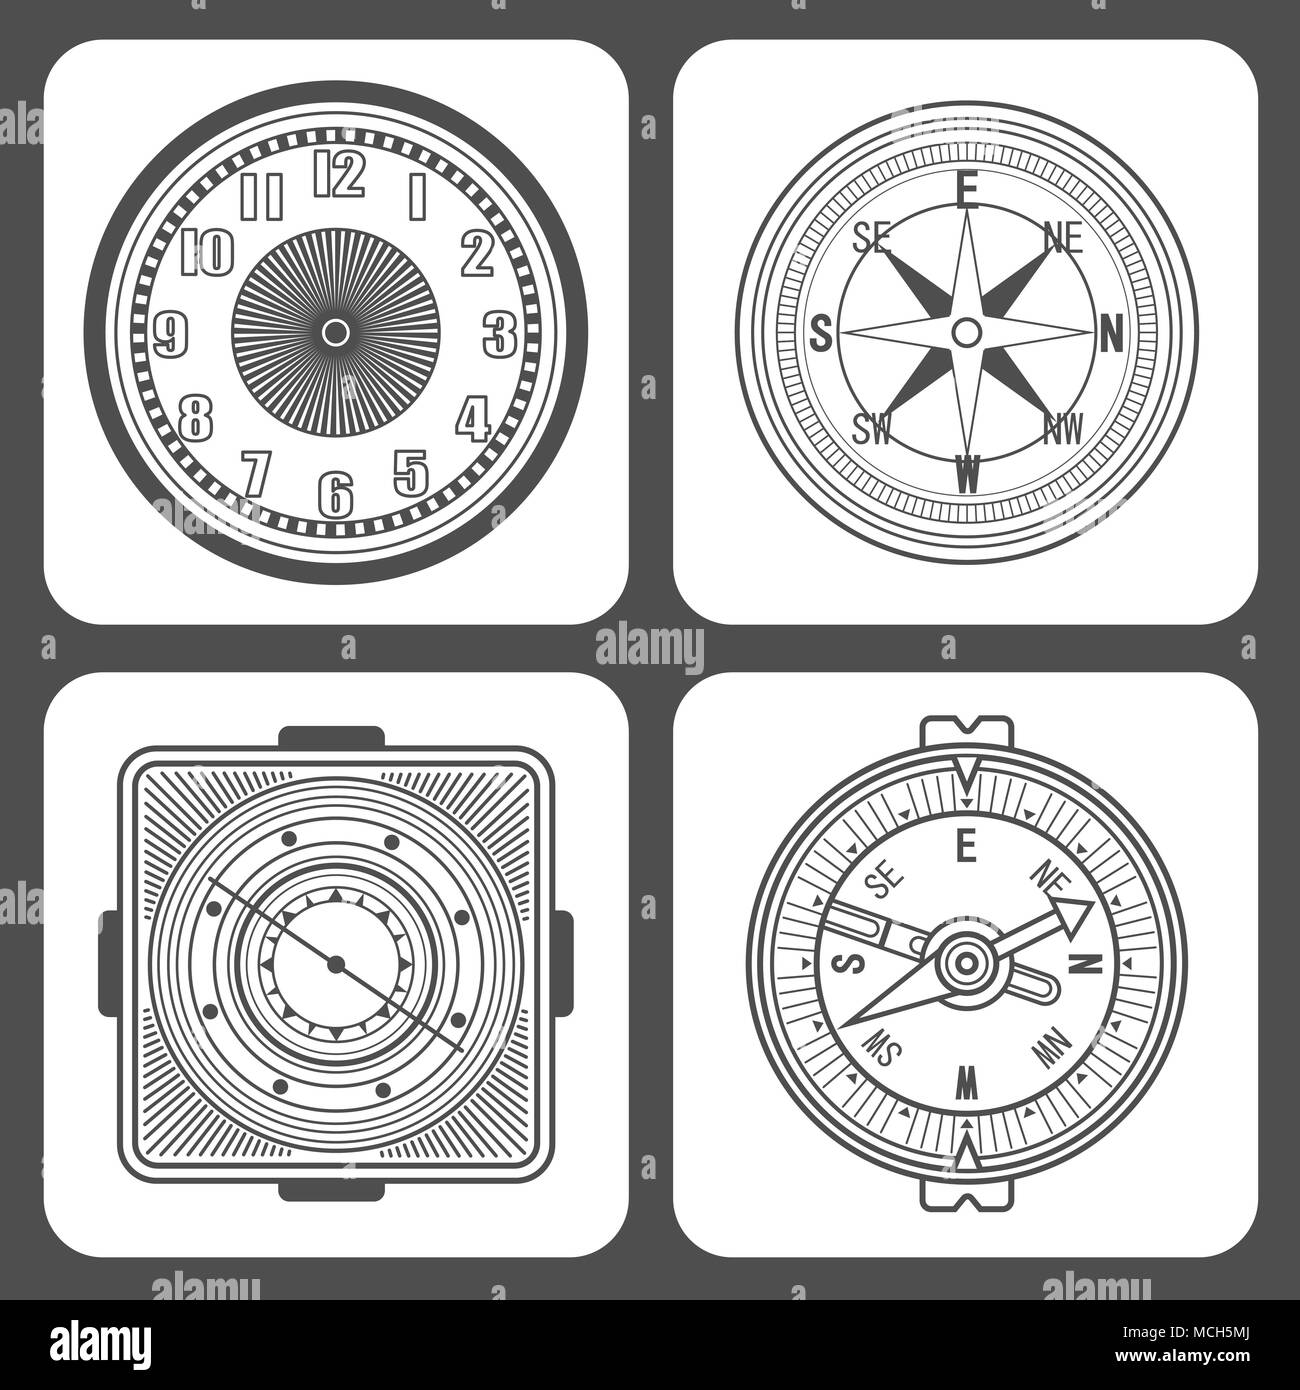 Set of Classic design mechanical wristwatch isolated on white background. Clock face with hour, minute and second hands. Vector illustration. - Stock Image